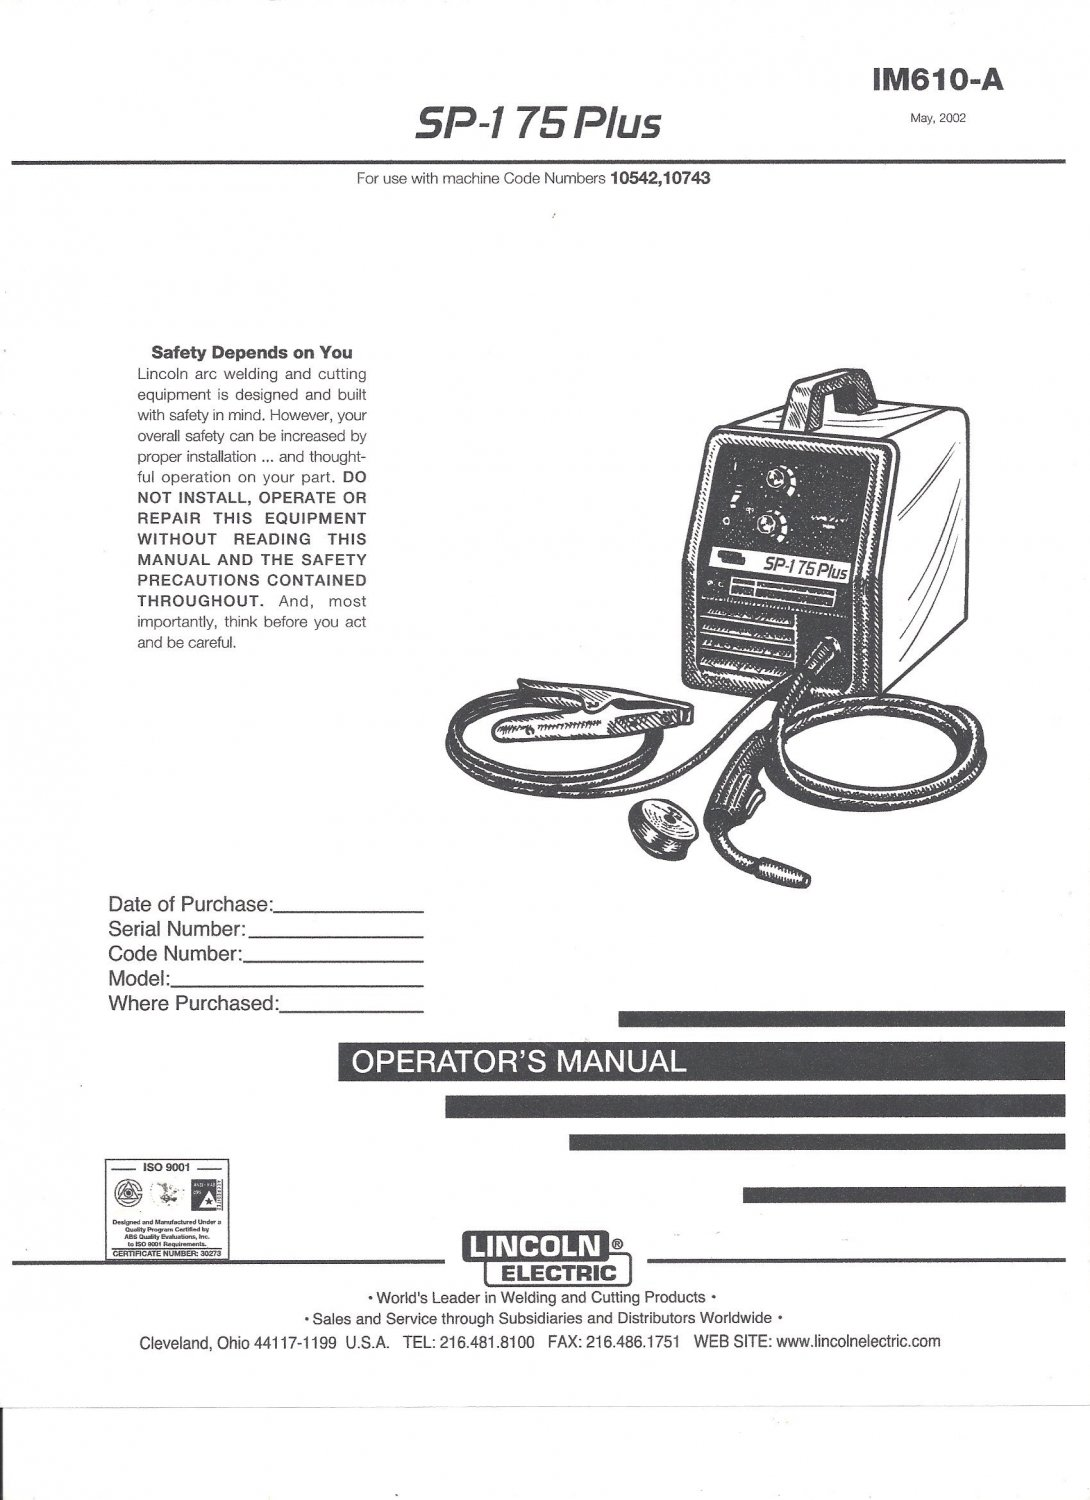 Lincoln Electric SP-175 PLUS Welder Operator's Manual ( Copy)